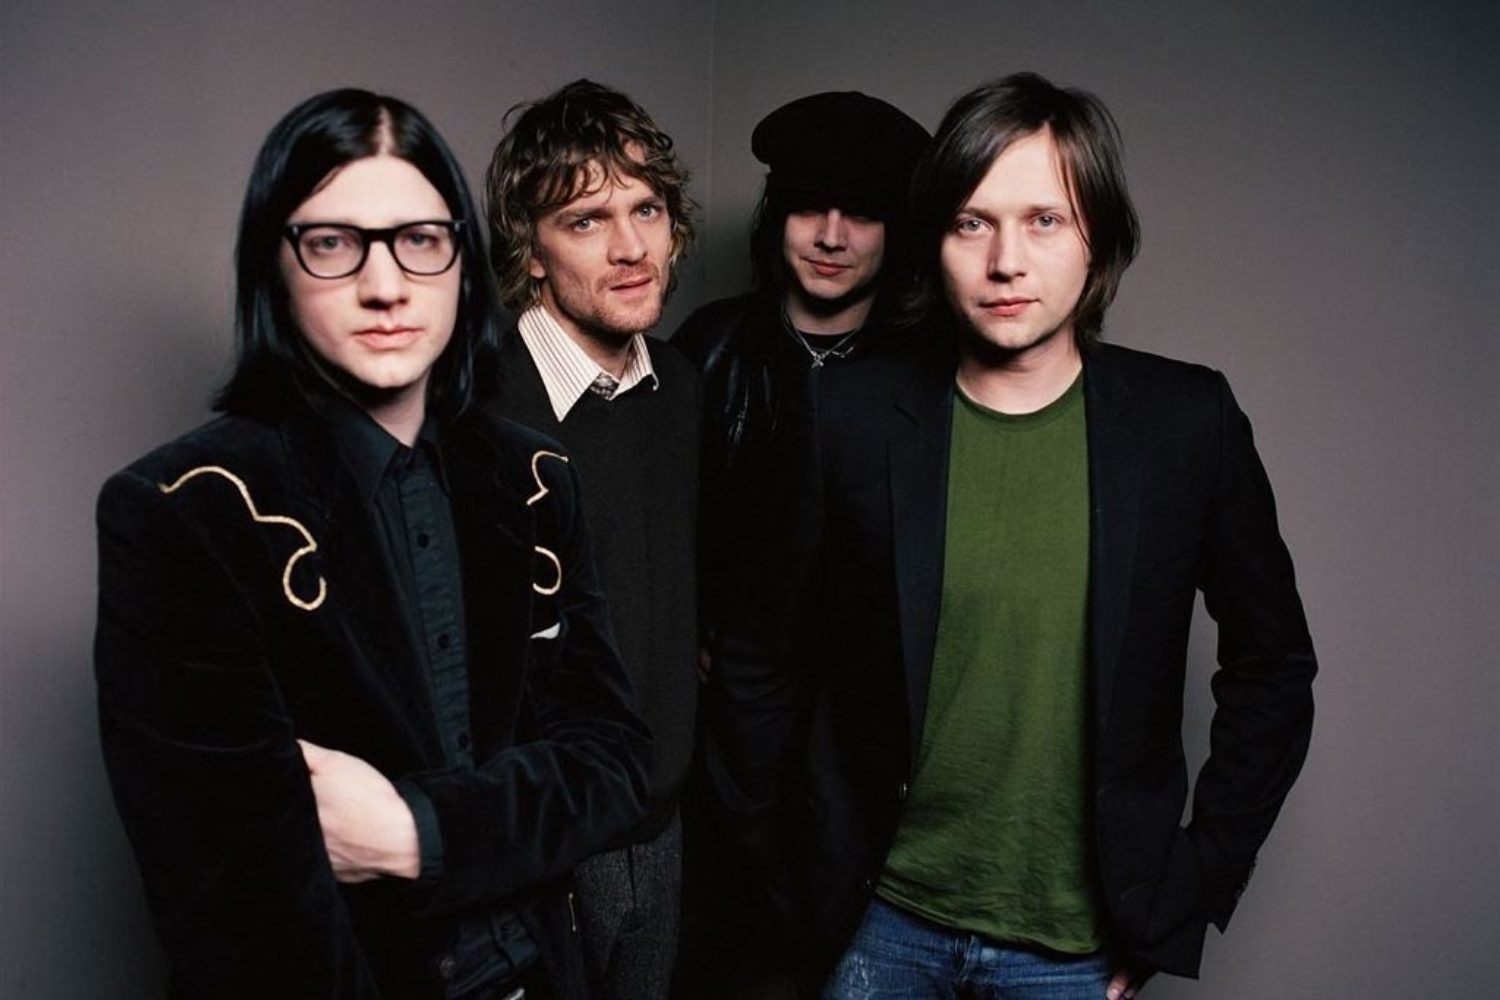 A new Raconteurs album will be released in 2019